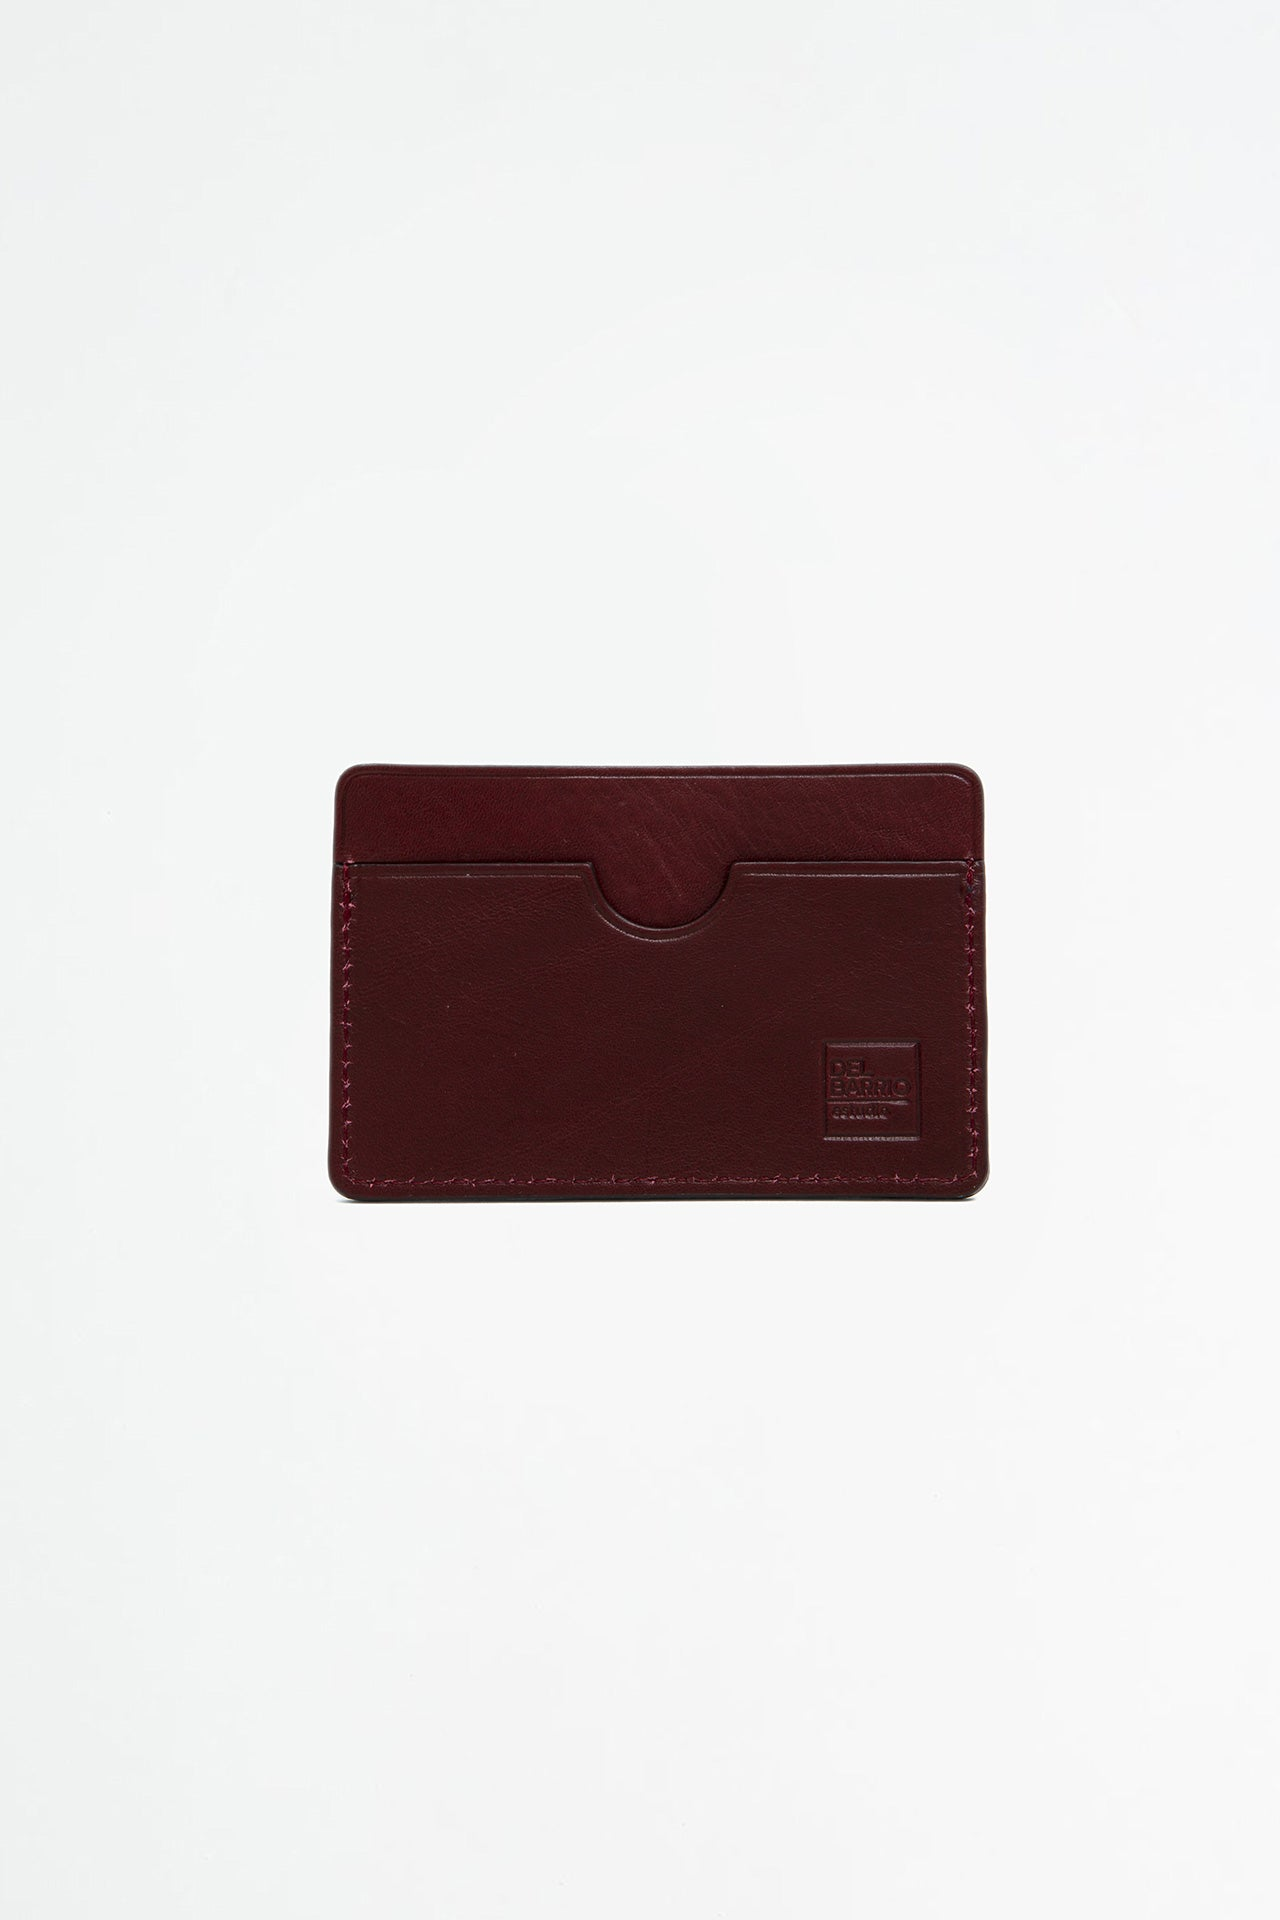 Simple cardholder burgundy